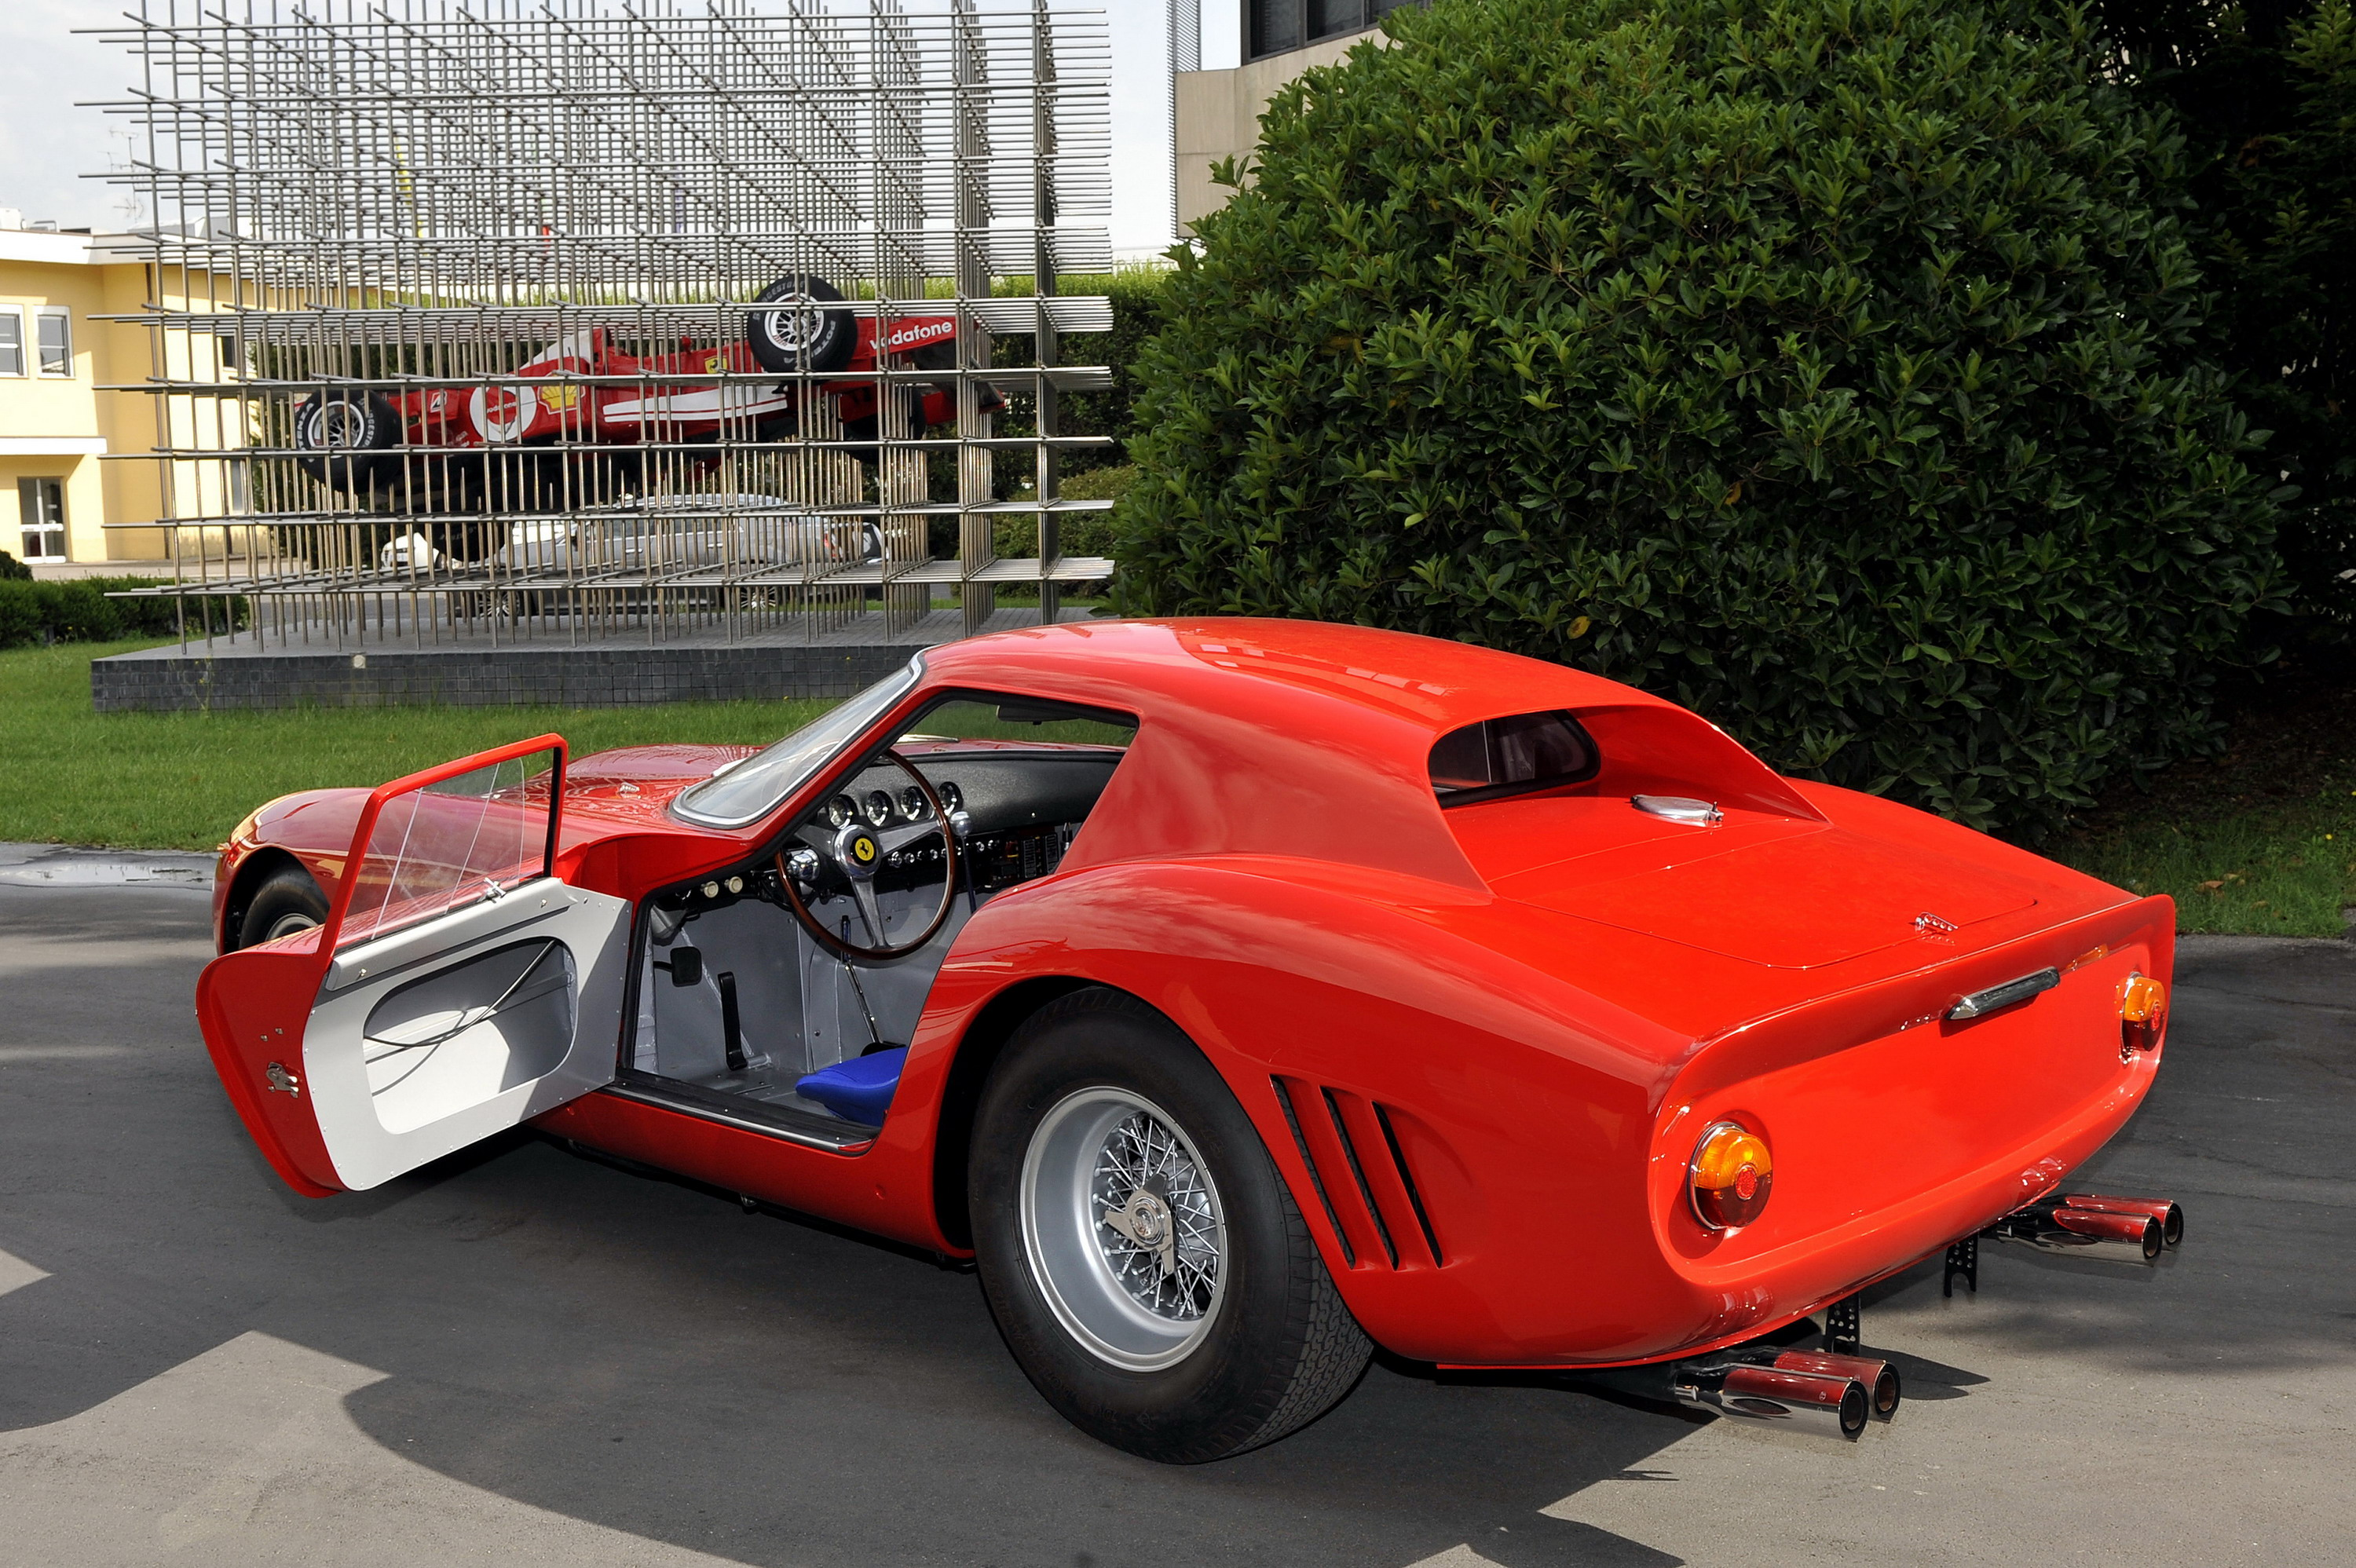 1962 1964 ferrari 250 gto gallery 575351 top speed. Black Bedroom Furniture Sets. Home Design Ideas